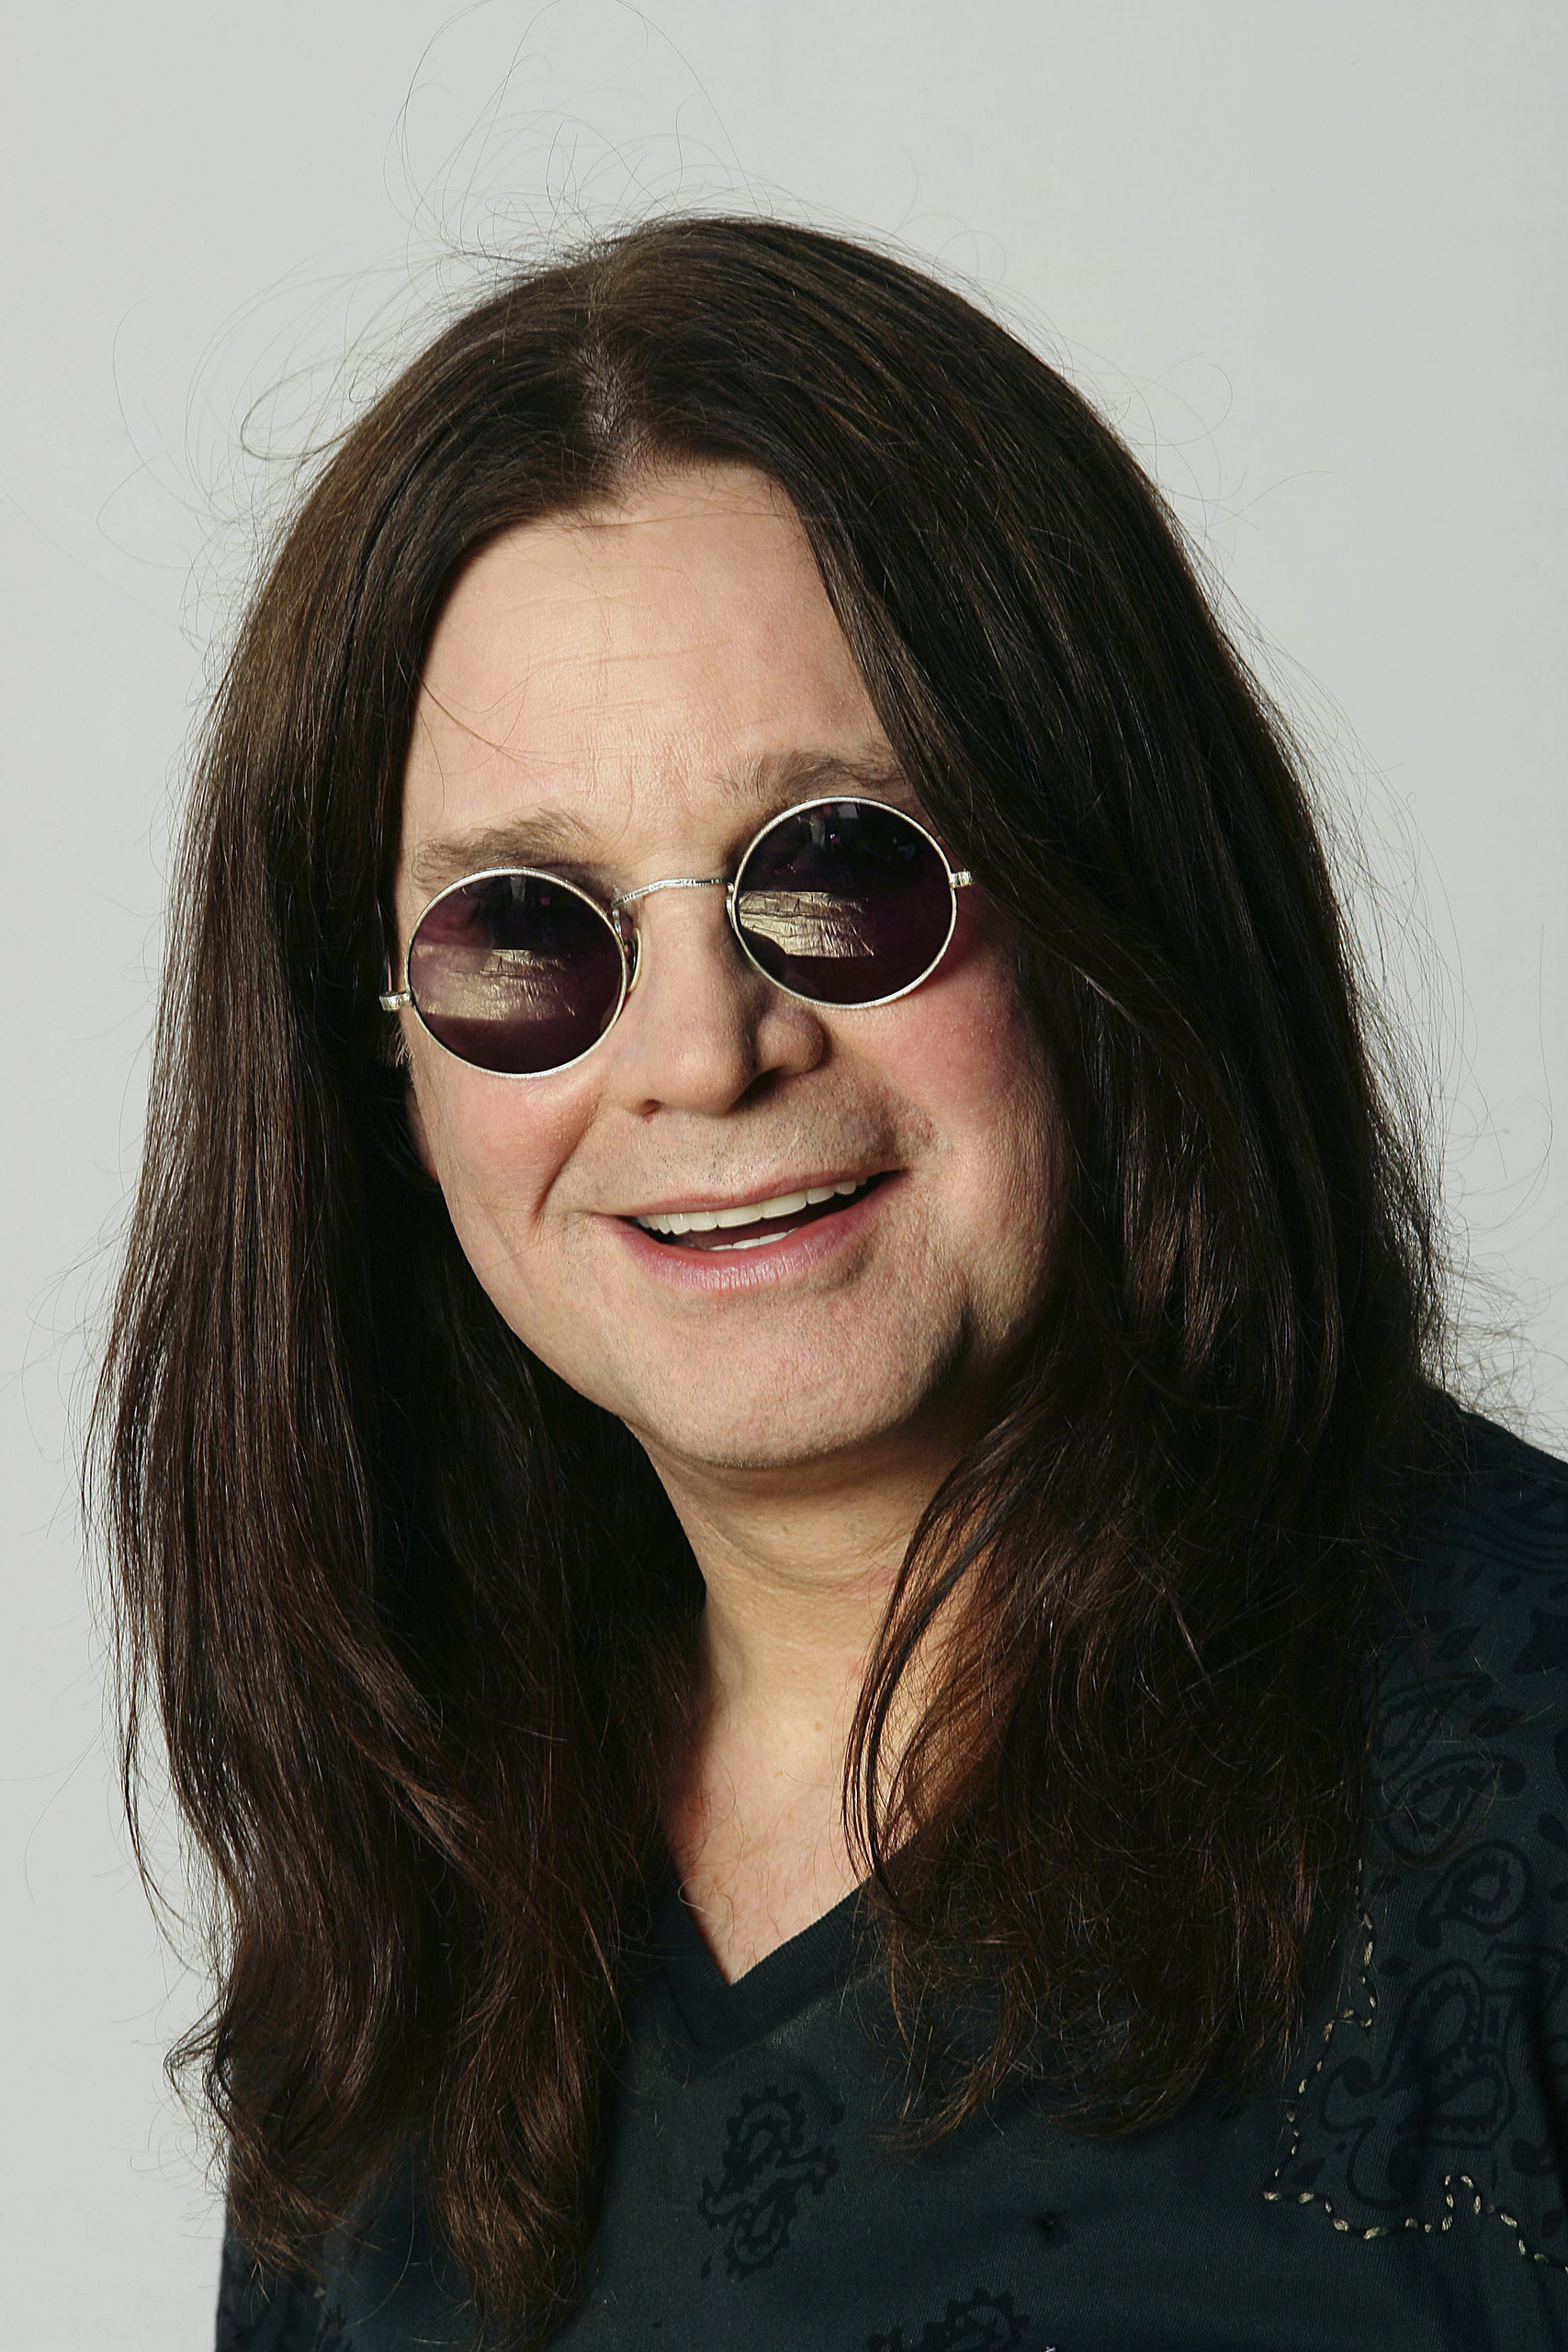 ozzy osbourne images dave hogan photoshoot hd wallpaper and